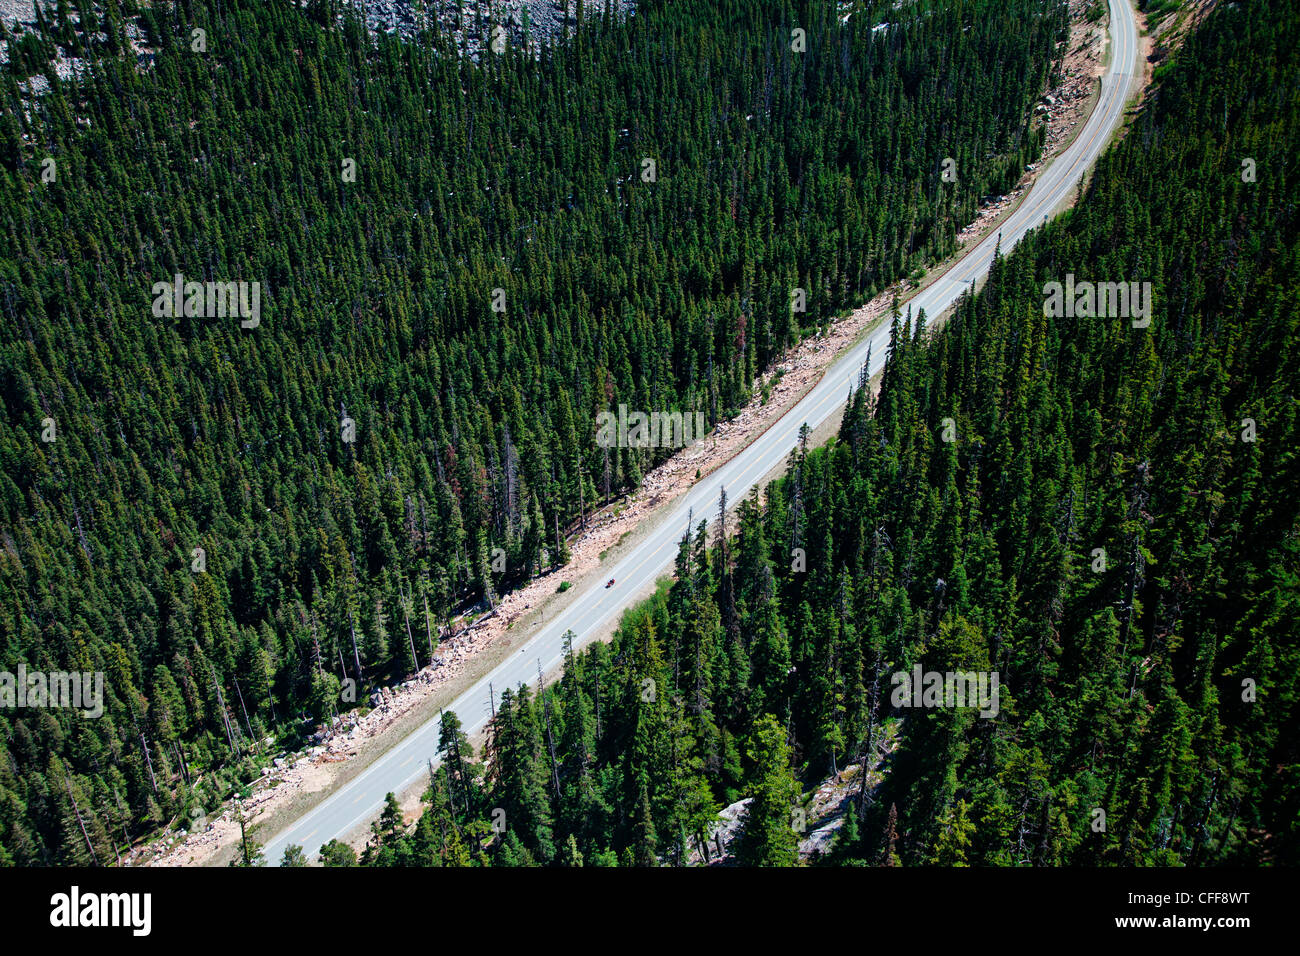 A road cuts through a national park and green trees. - Stock Image